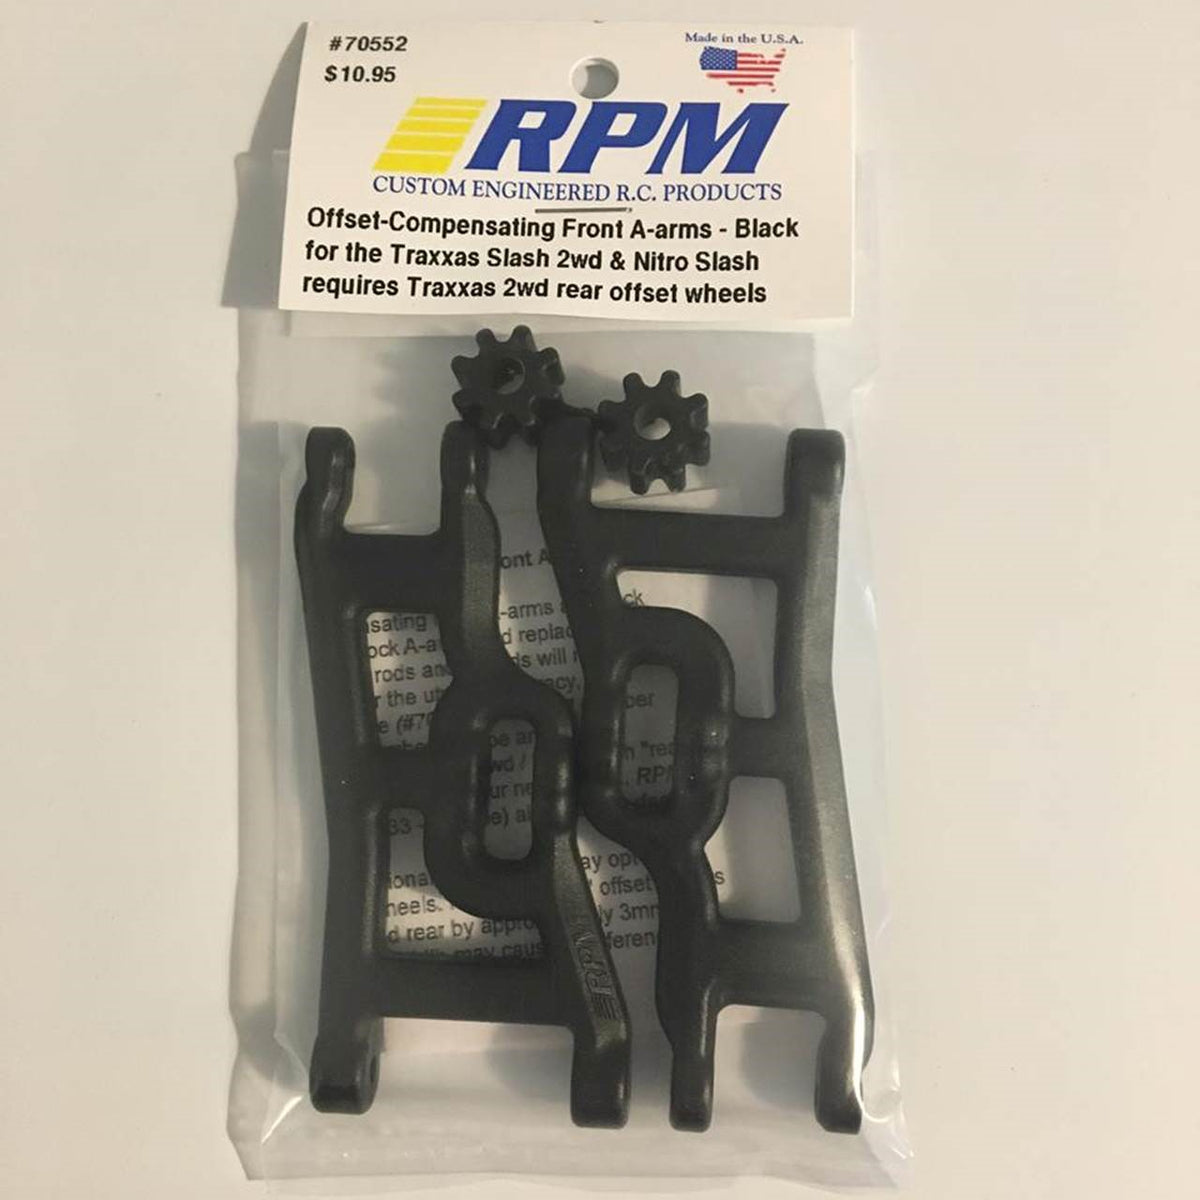 RPM R//C Products 73395 Rod Ends:Long Shank 4-40 12 Blue